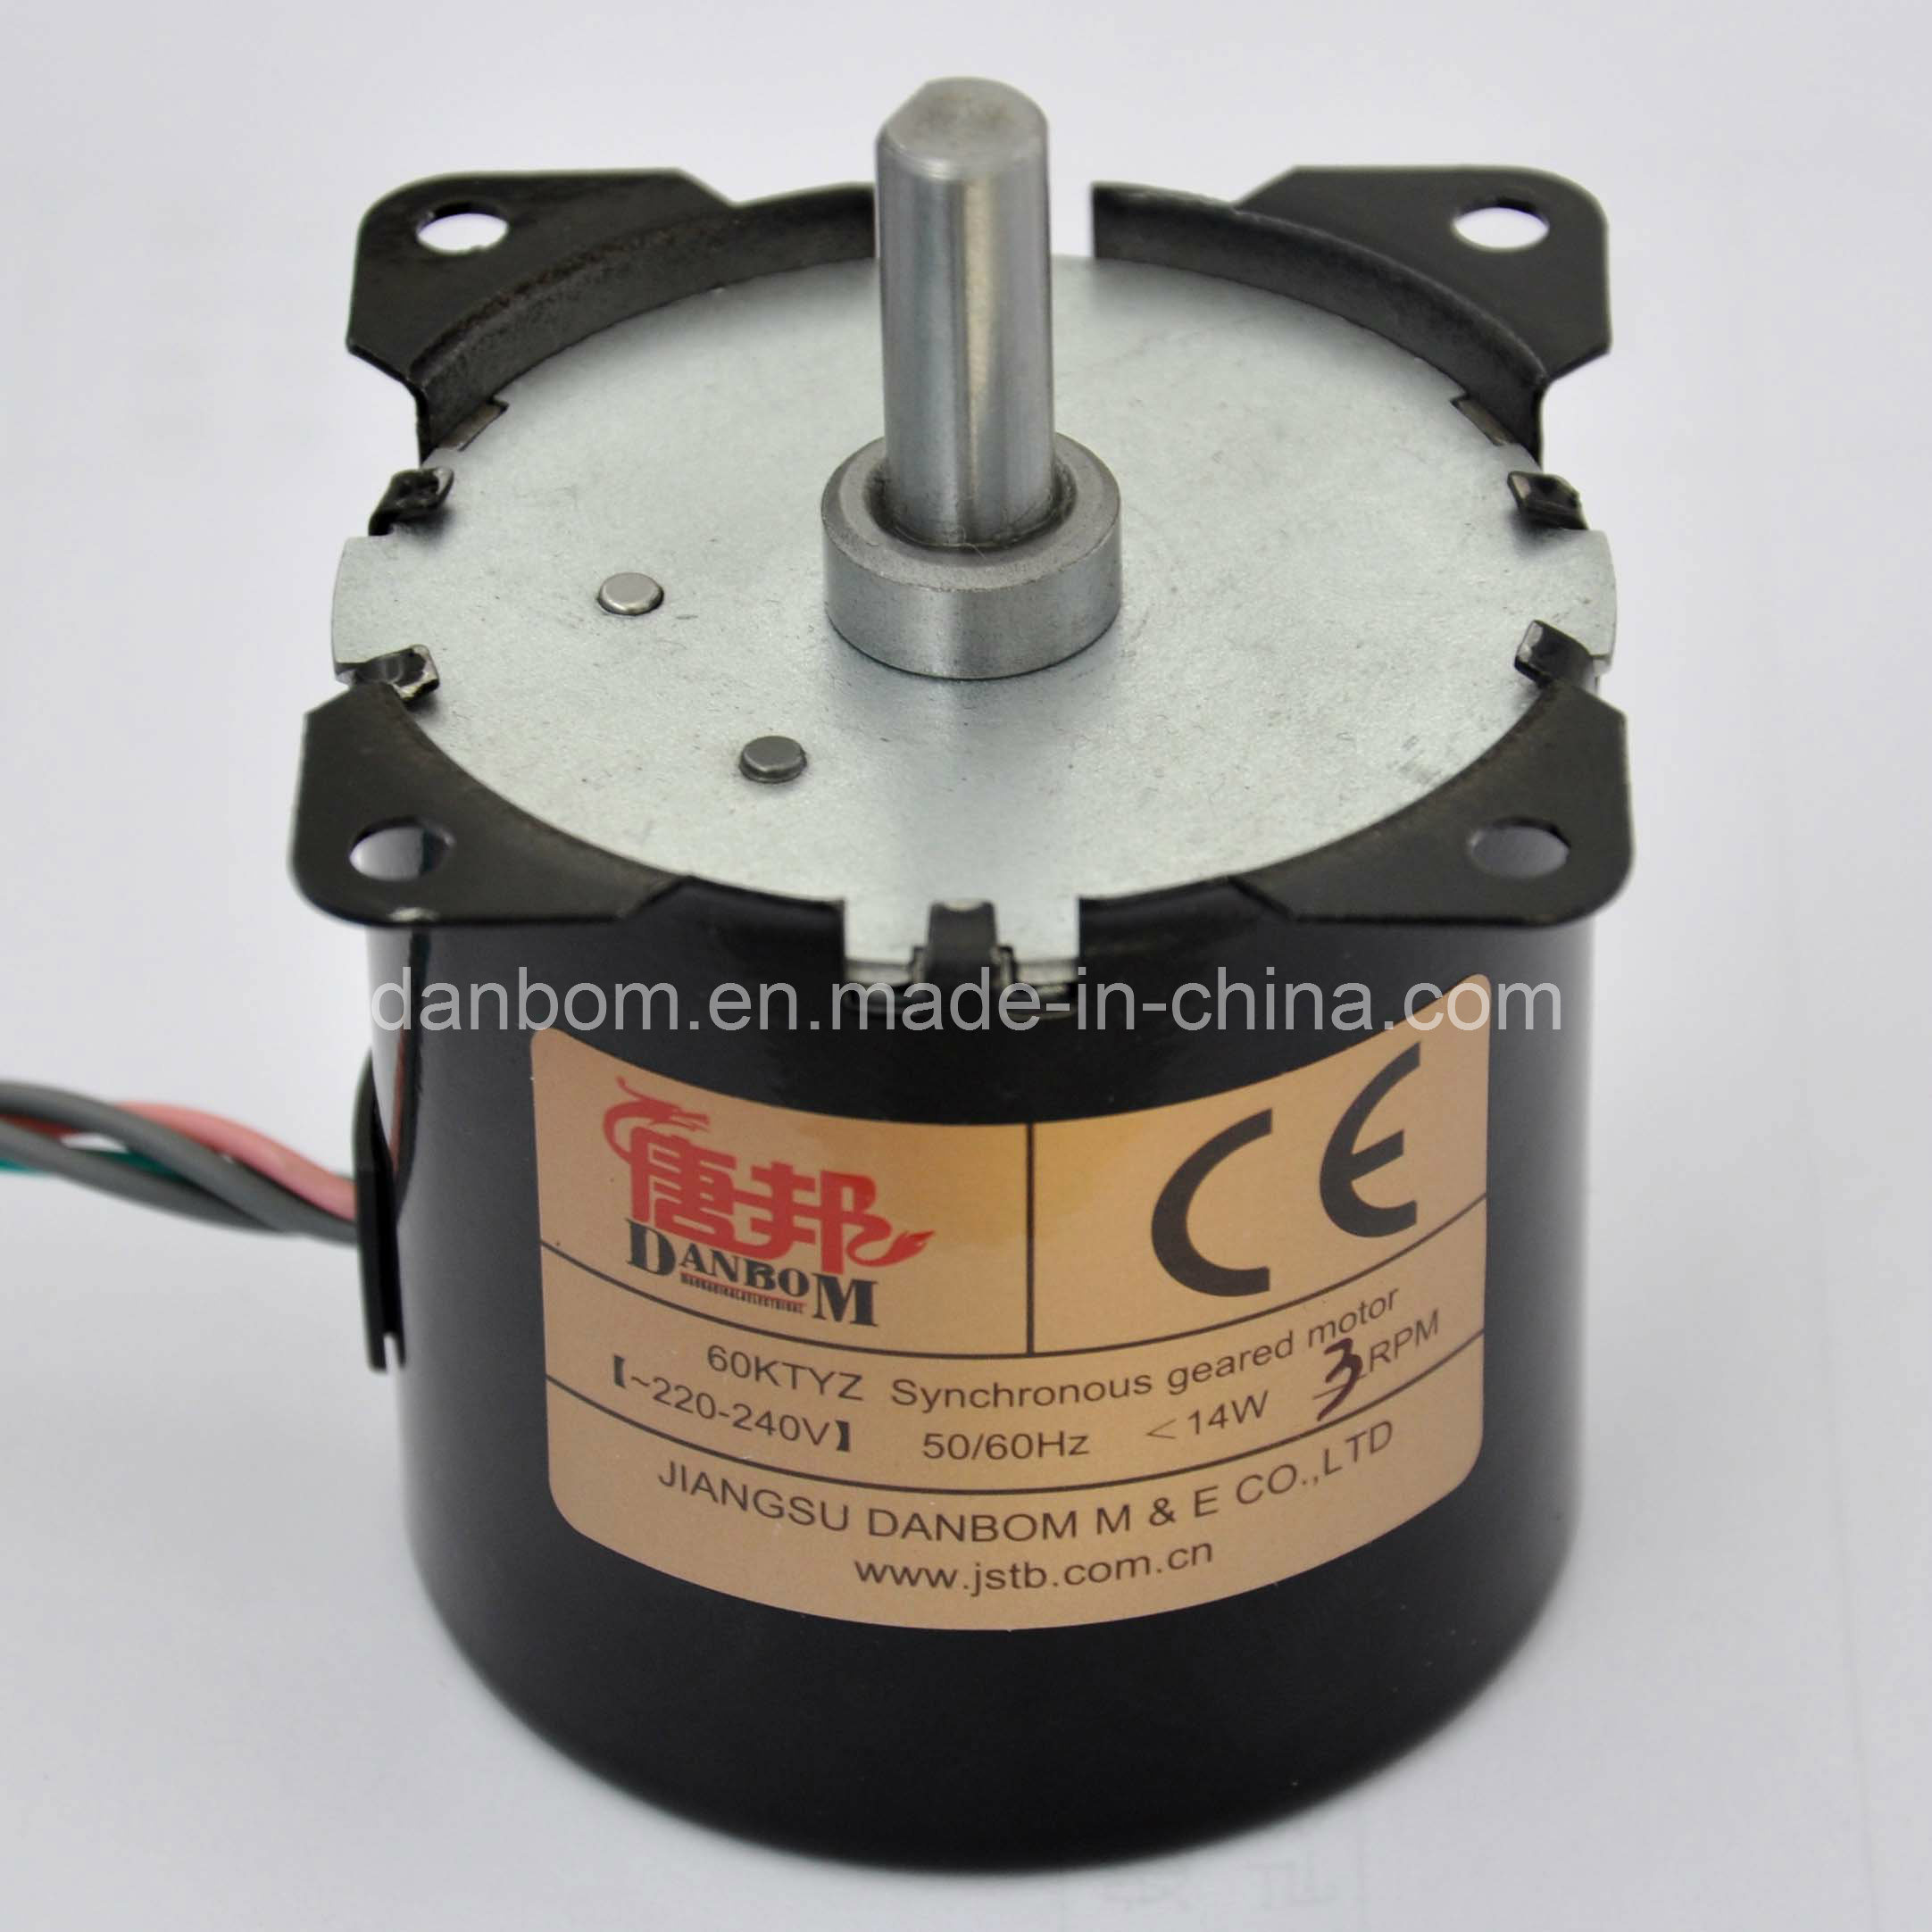 China High Torque Ac Synchronous Gear Motor 60ktyz